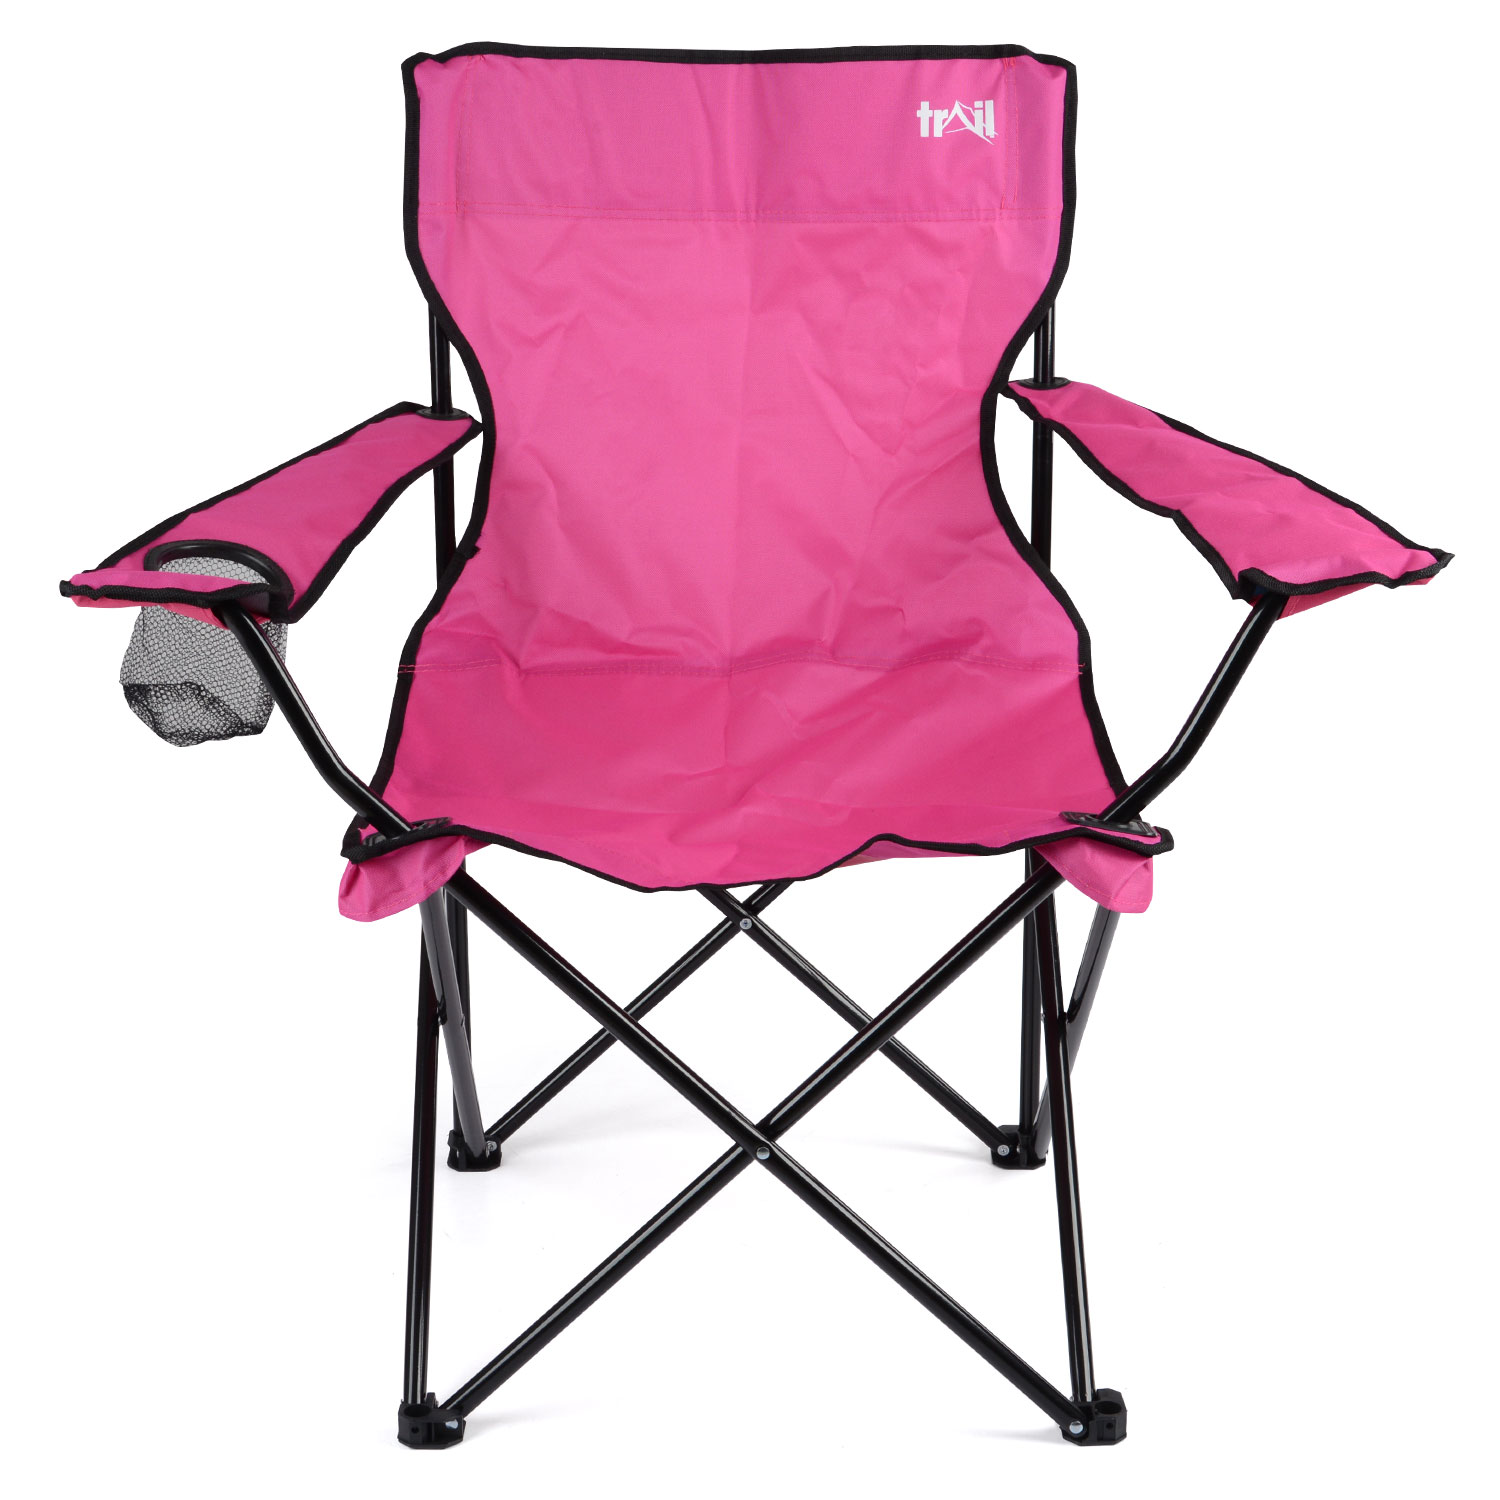 fold up camping chairs director chair price folding foldable beach camp festival